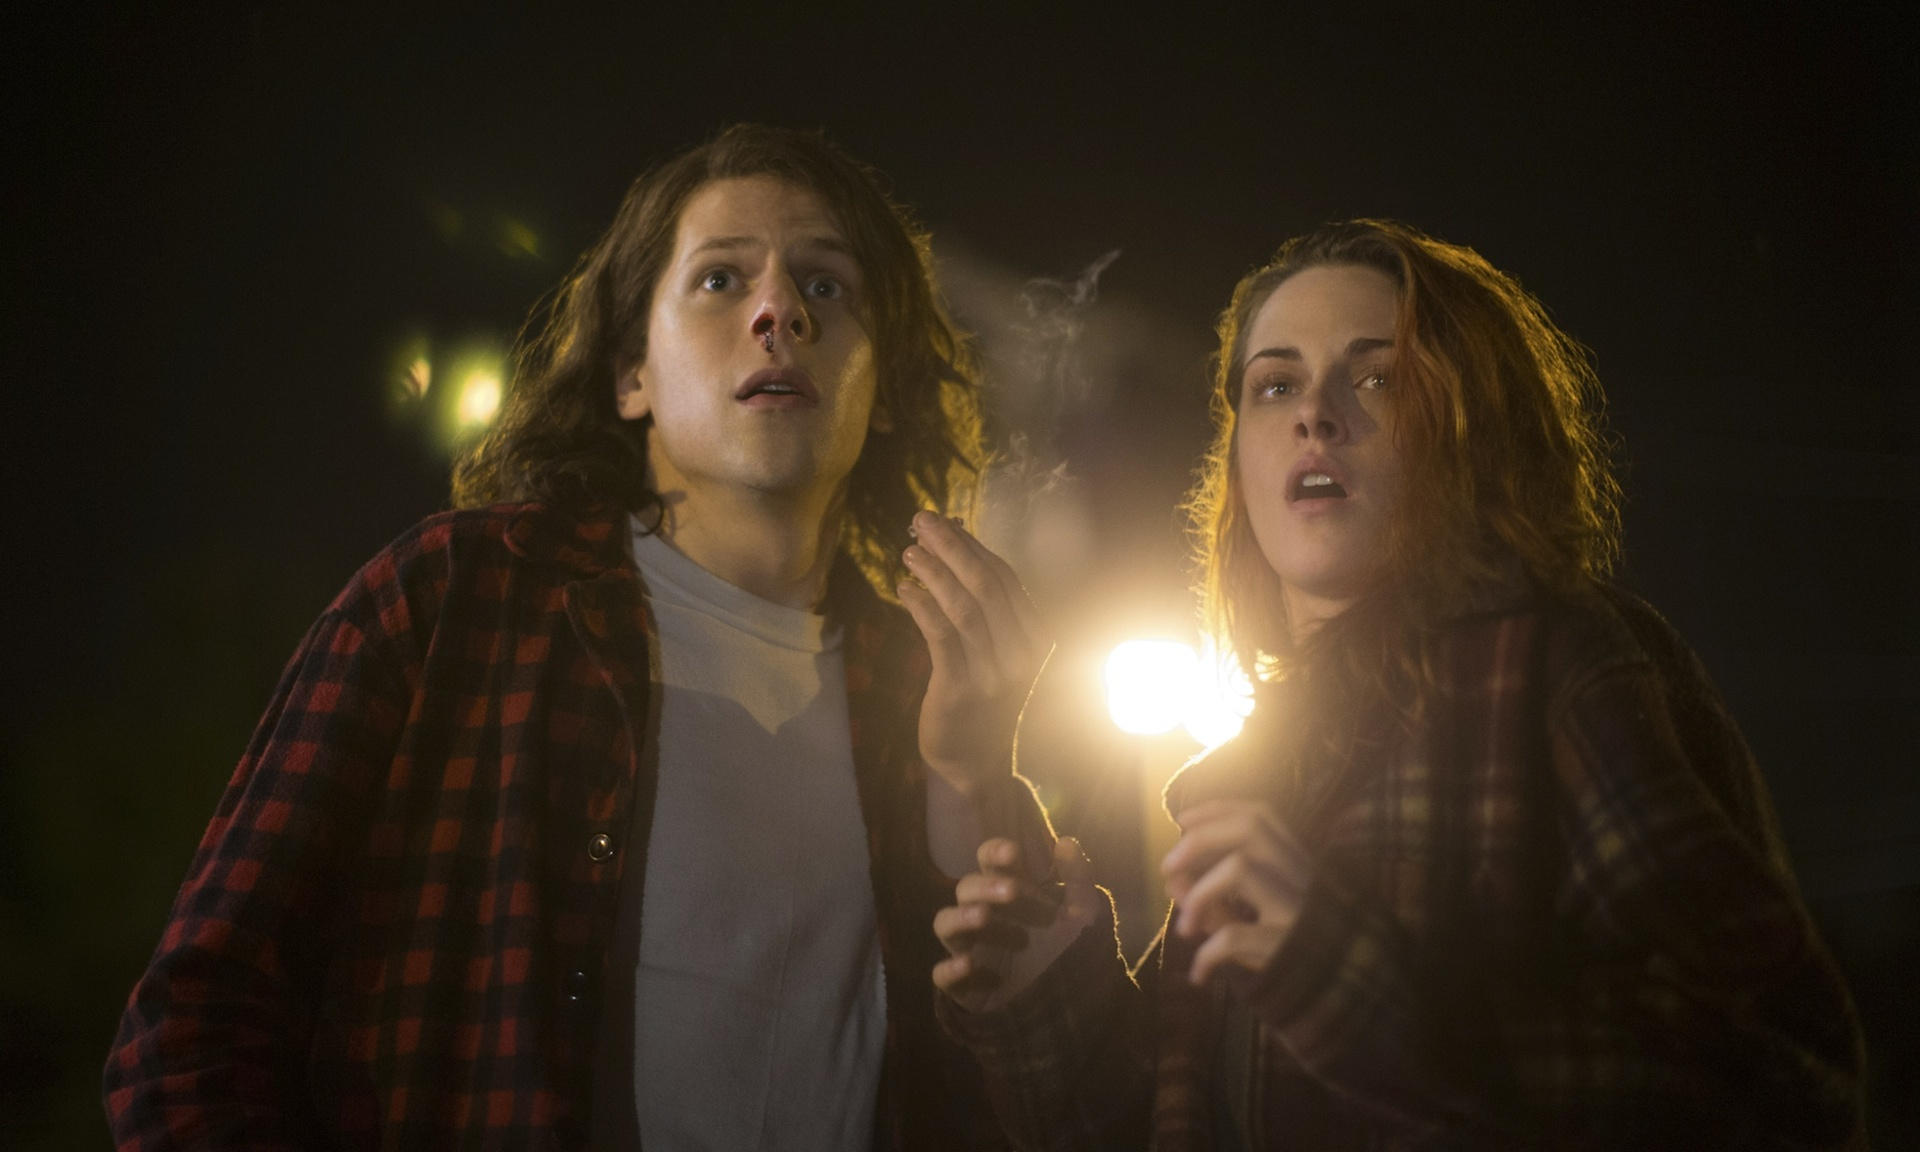 Kristen Stewart and Jesse Eisenberg team up in American Ultra.